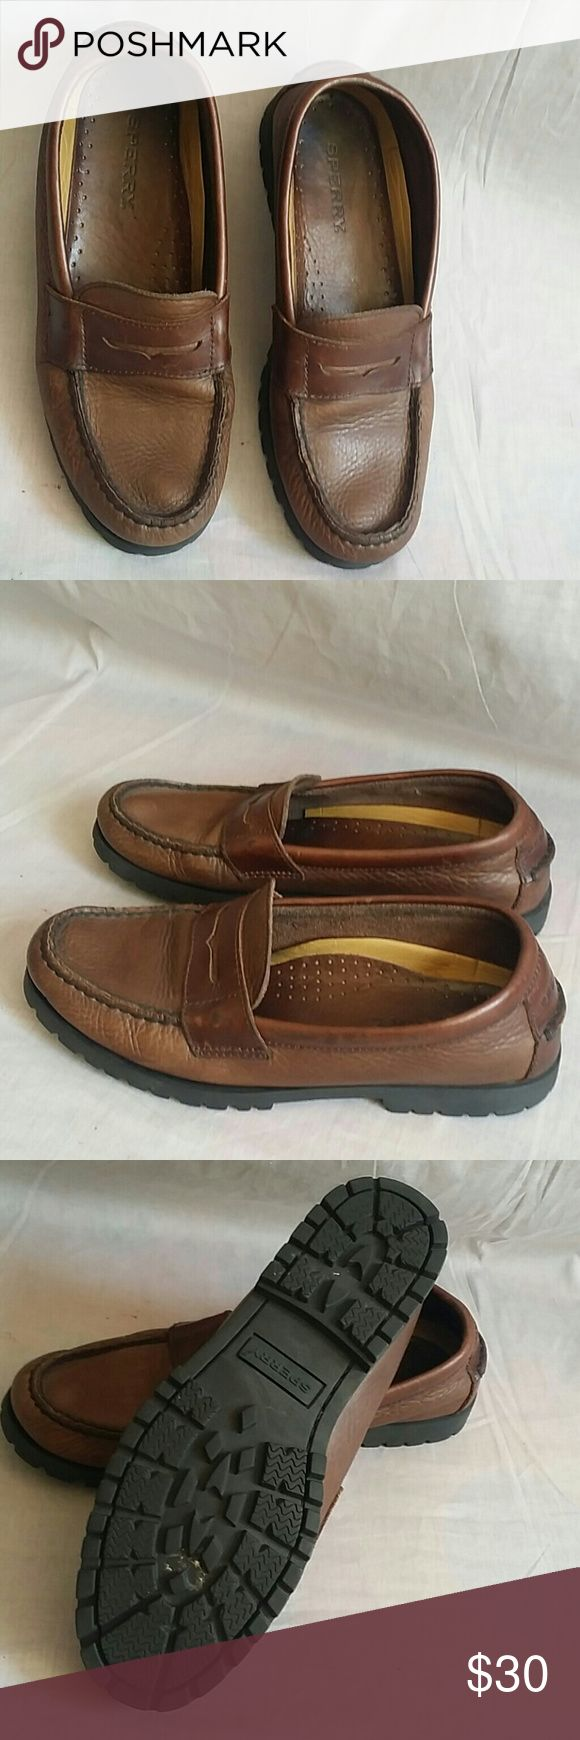 Men's SPERRY Boat Shoes 8.5 M Leather Slip-on Item is in a good condition, NO PETS AND SMOKE FREE HOME. SPERRY Shoes Boat Shoes